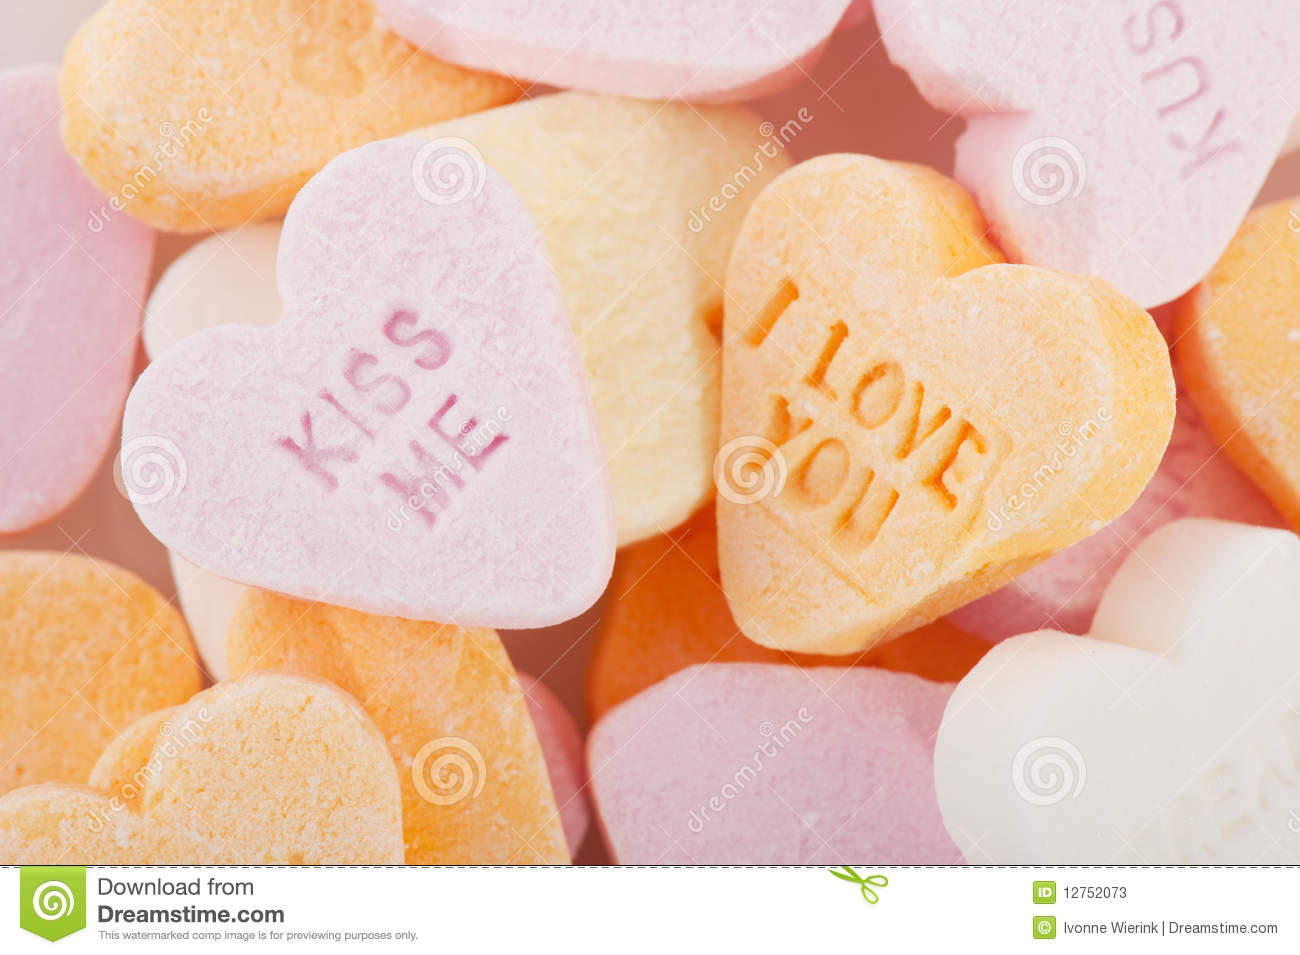 Love Wallpaper U And Me : Love You And Kiss Me candy Hearts Stock Image - Image: 12752073